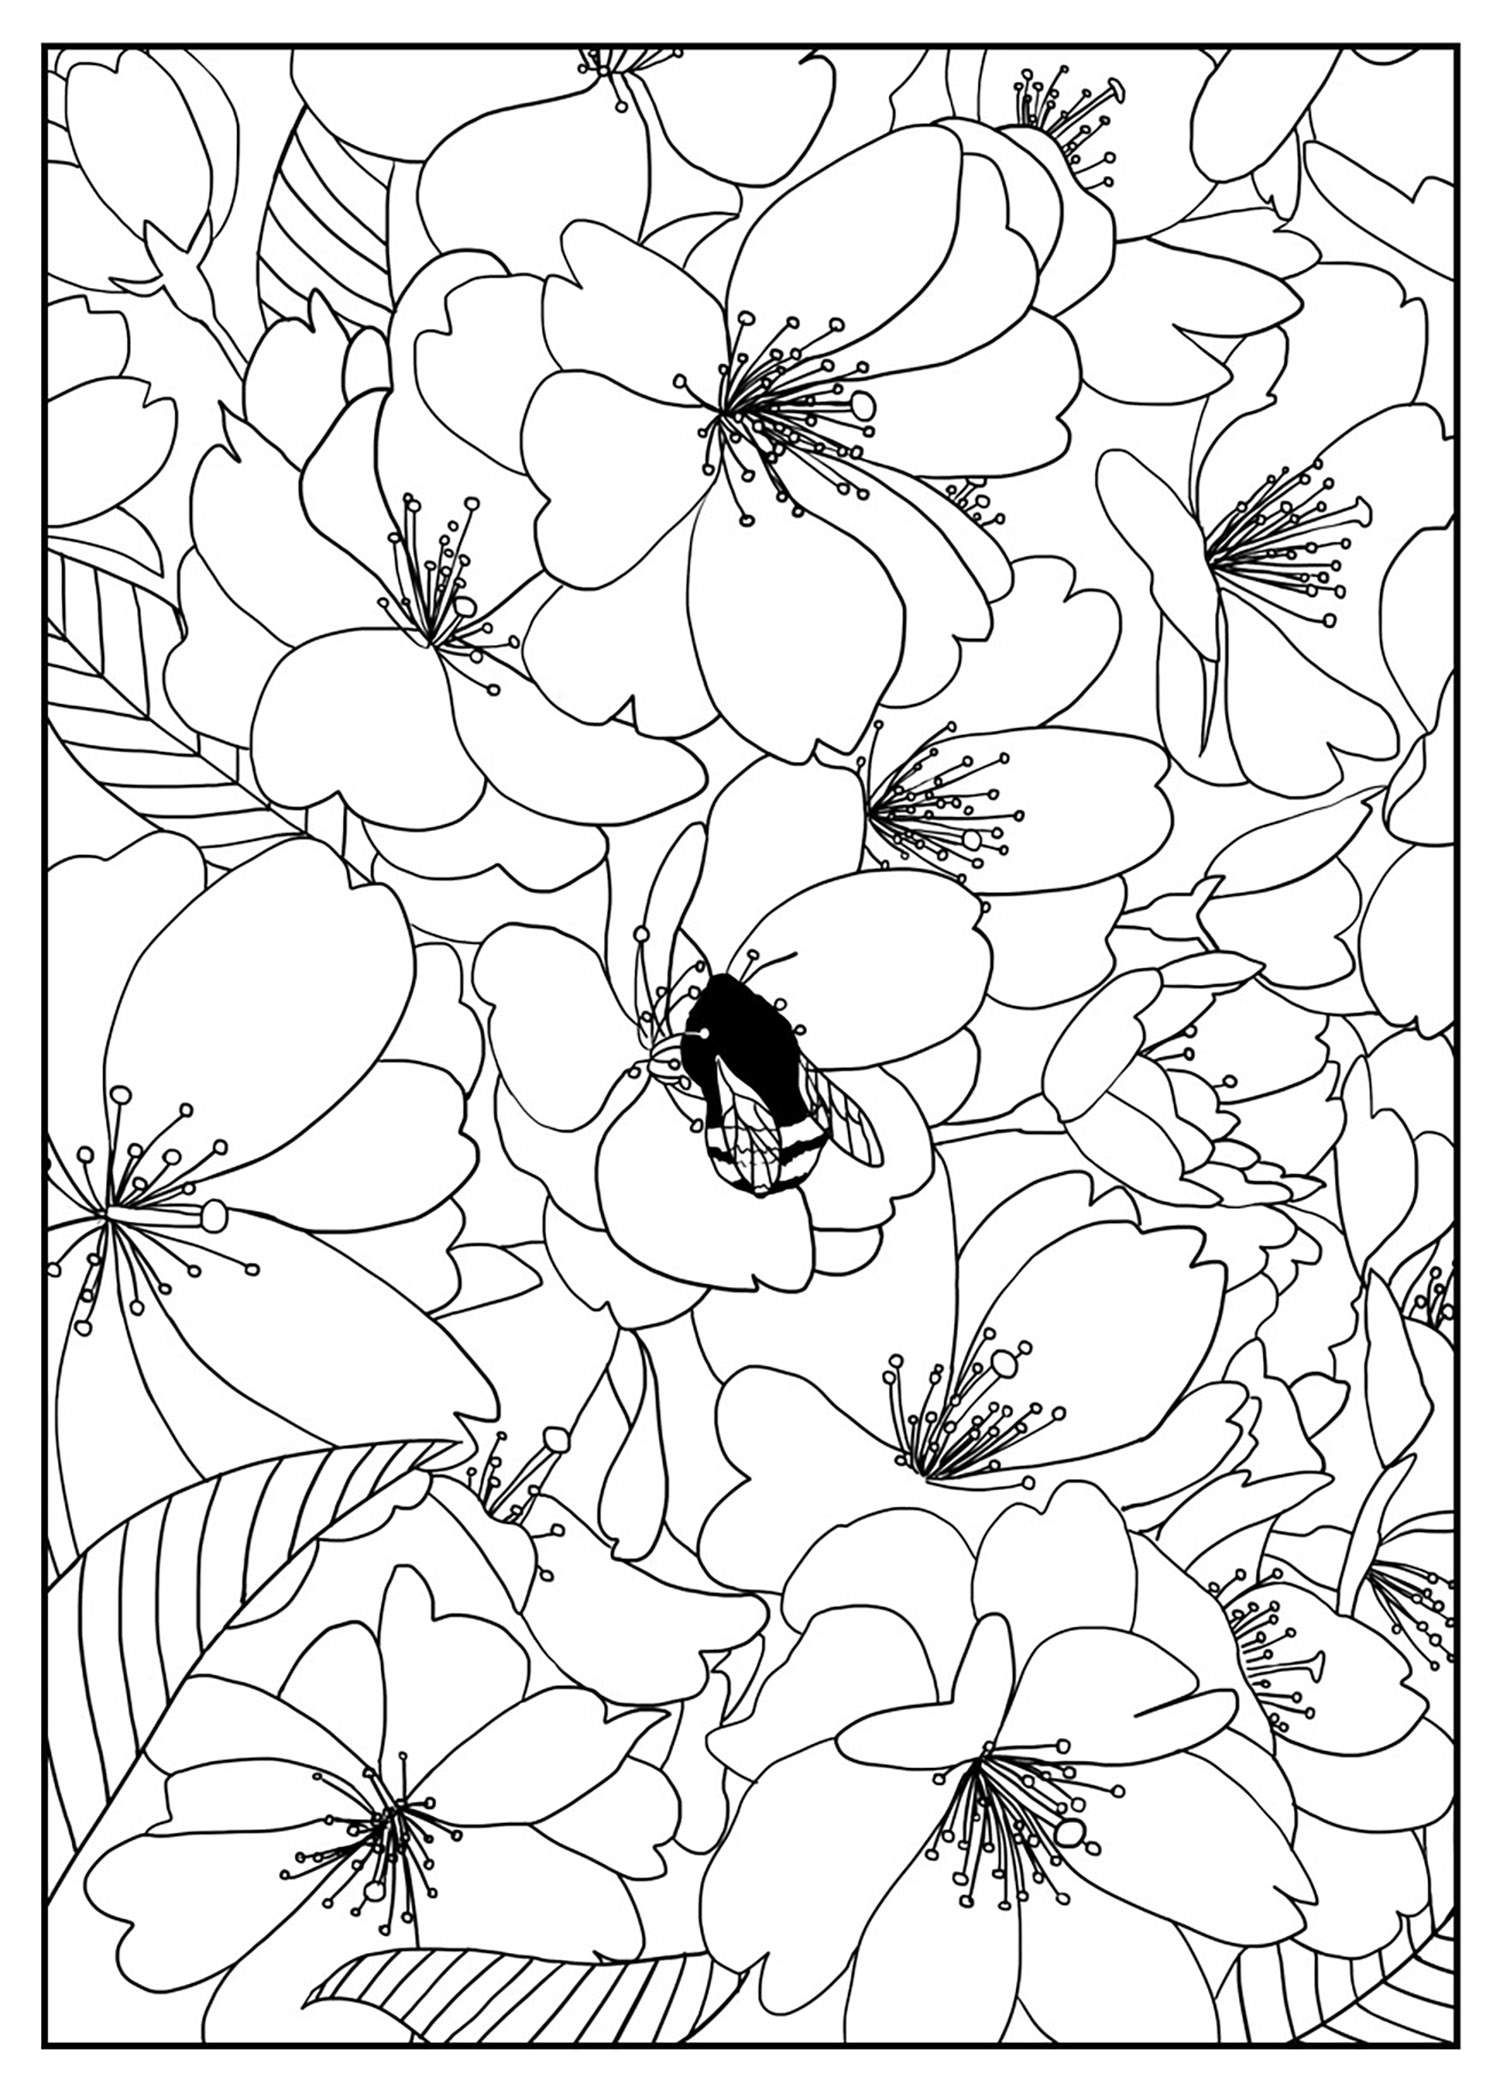 flowers coloring pages printable free printable flower coloring pages for kids cool2bkids pages coloring flowers printable 1 1